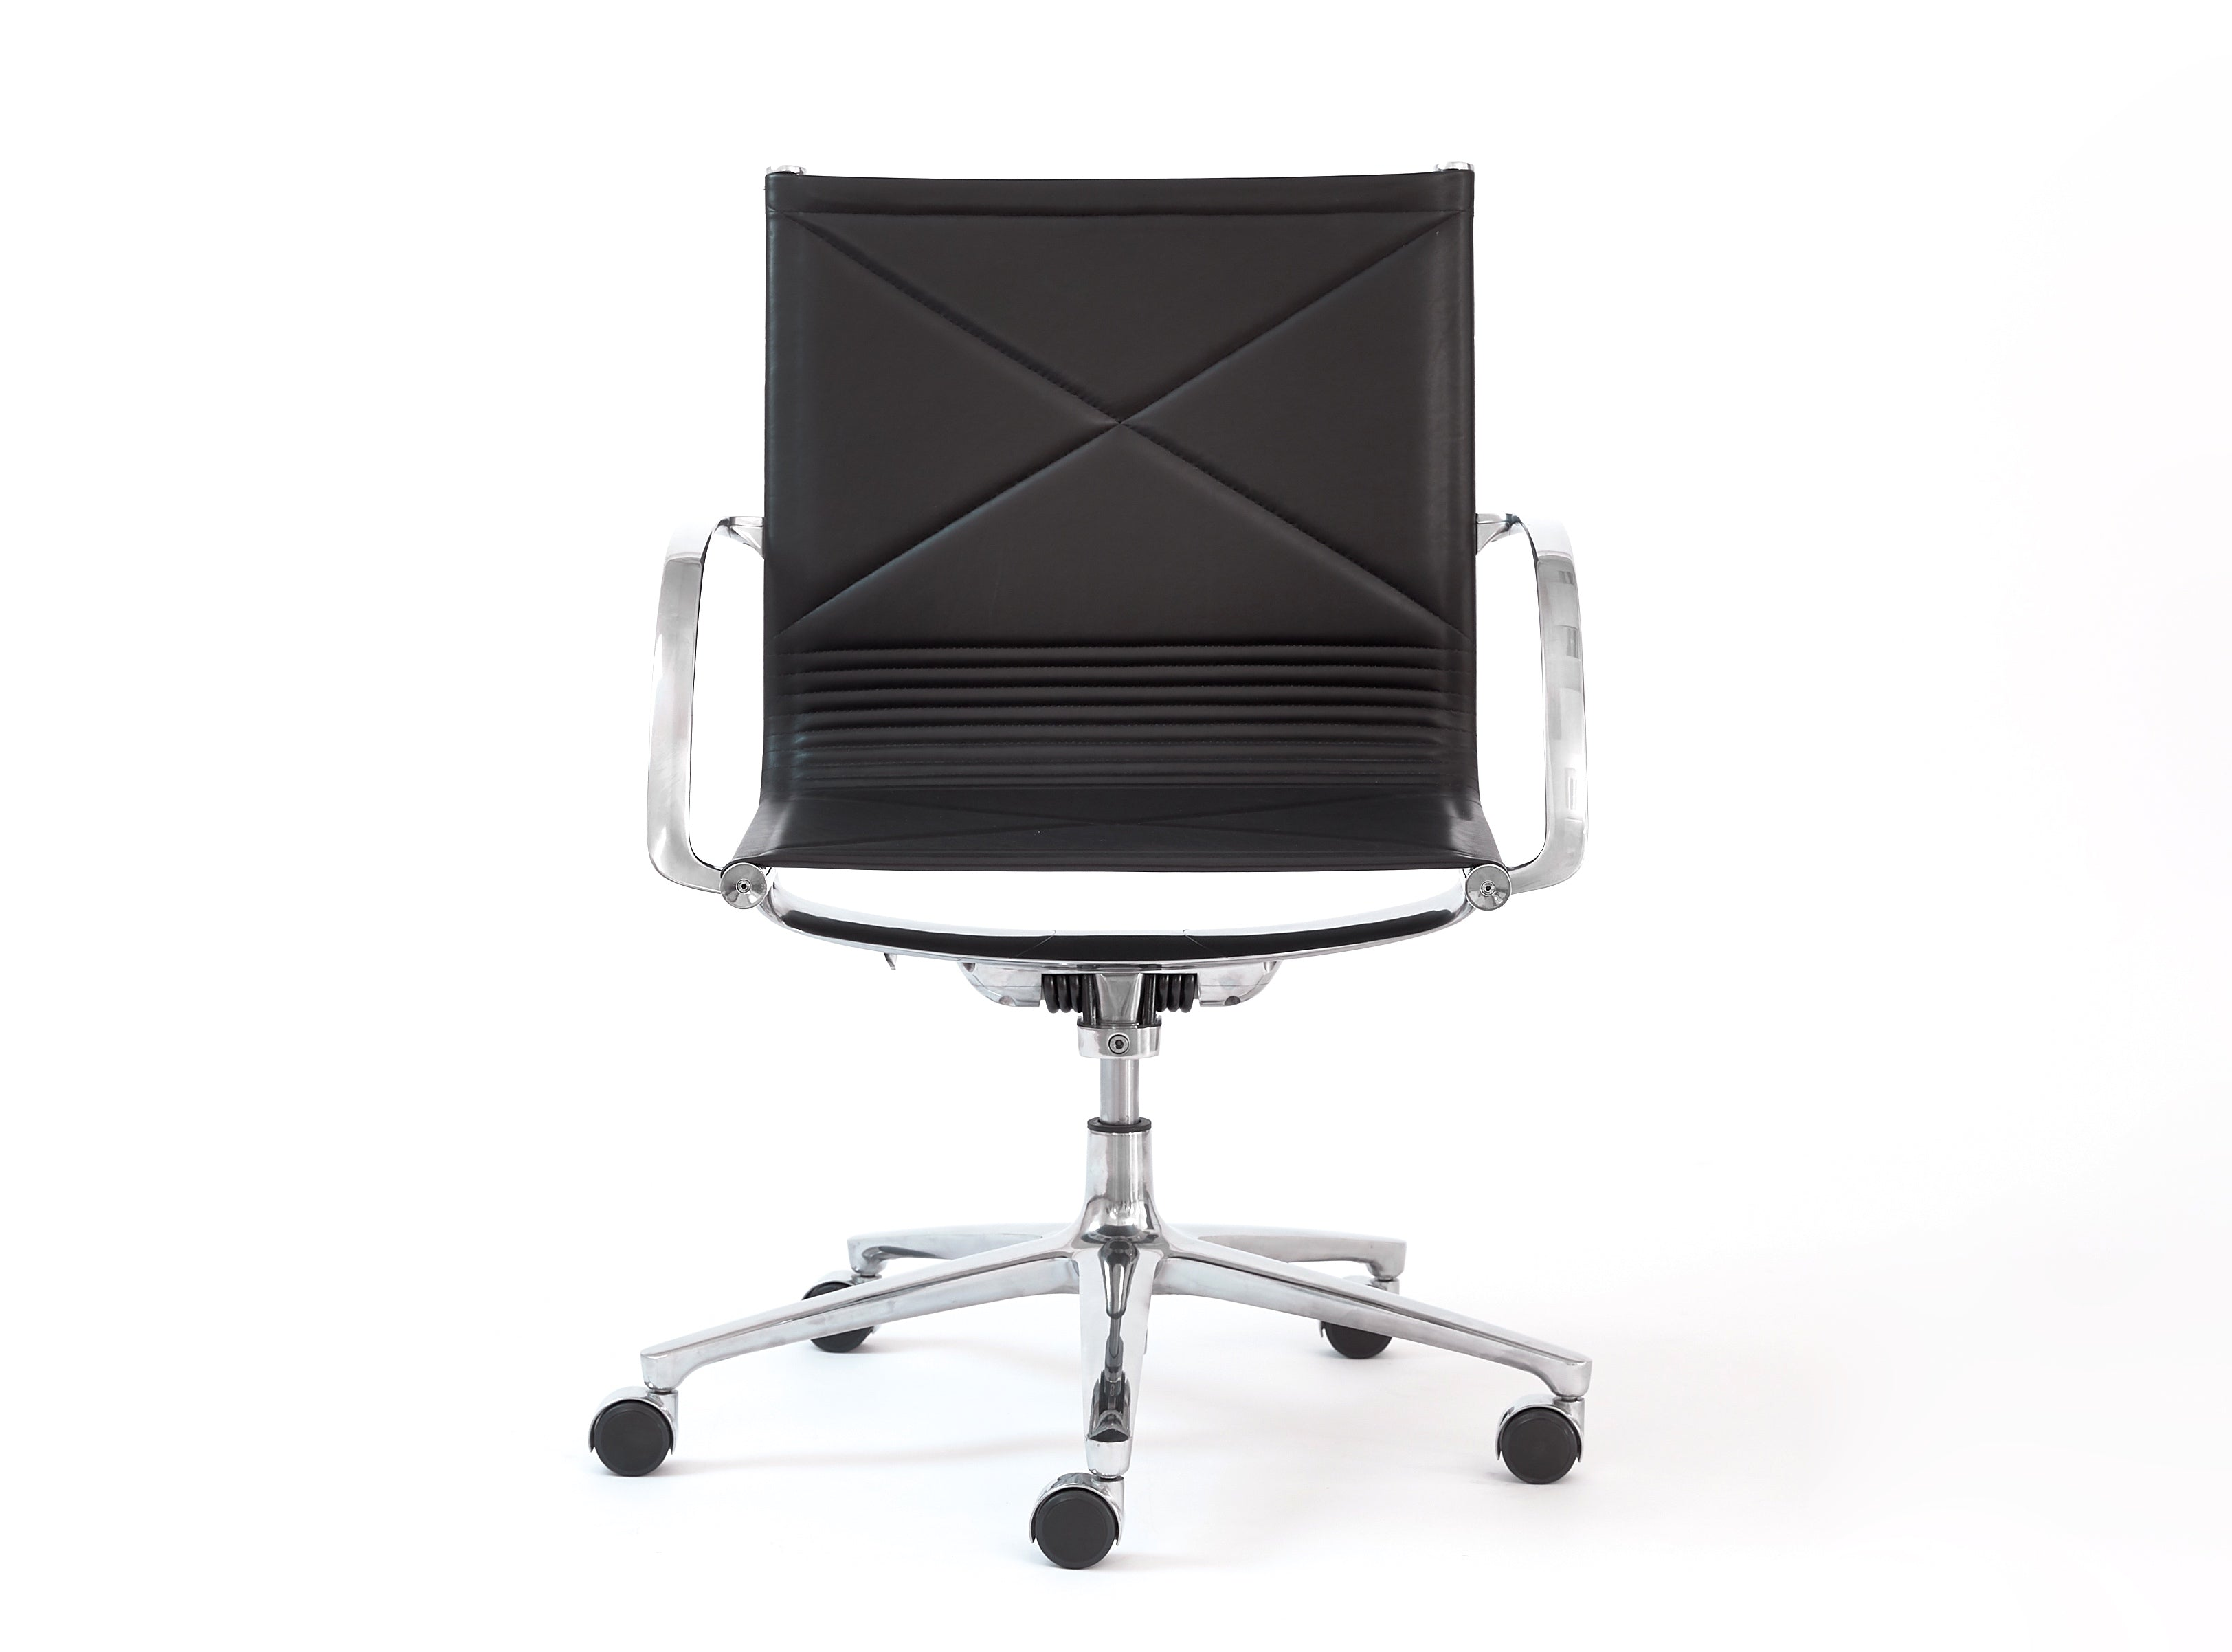 Subscription_OMNI_Anders_Hermansen_Joint_1206_office_chair_black_classic_four_legged_meeting_conference_room_fixed_seating